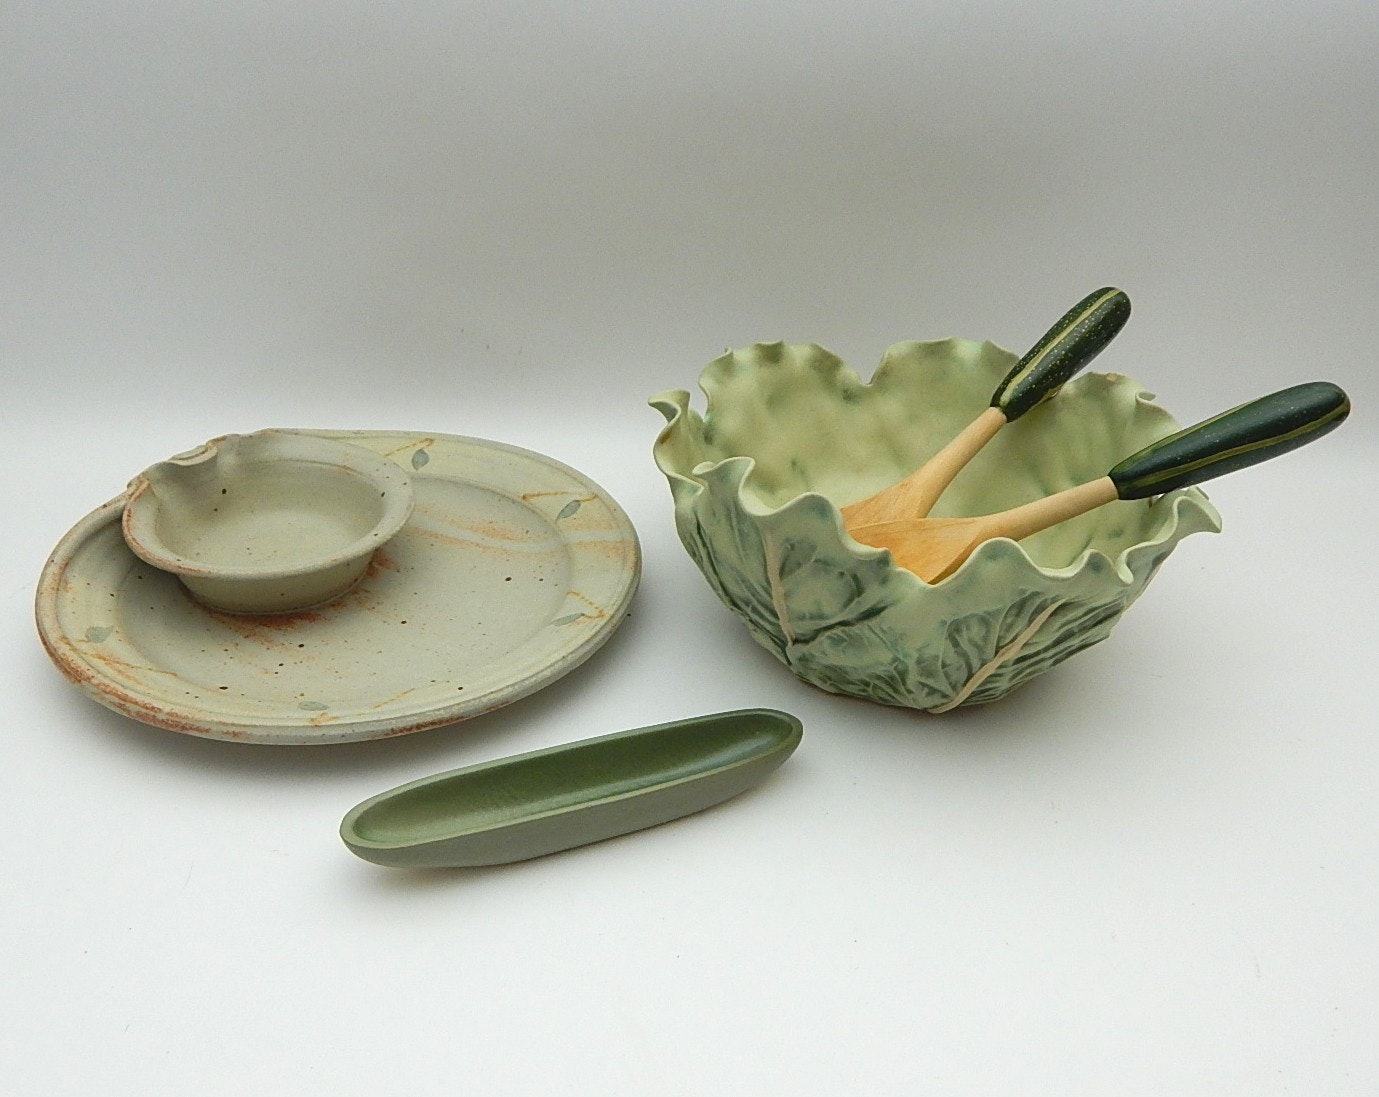 Decorative Cabbage Salad Bowl, Pottery Chip 'N Dip, Vegetable